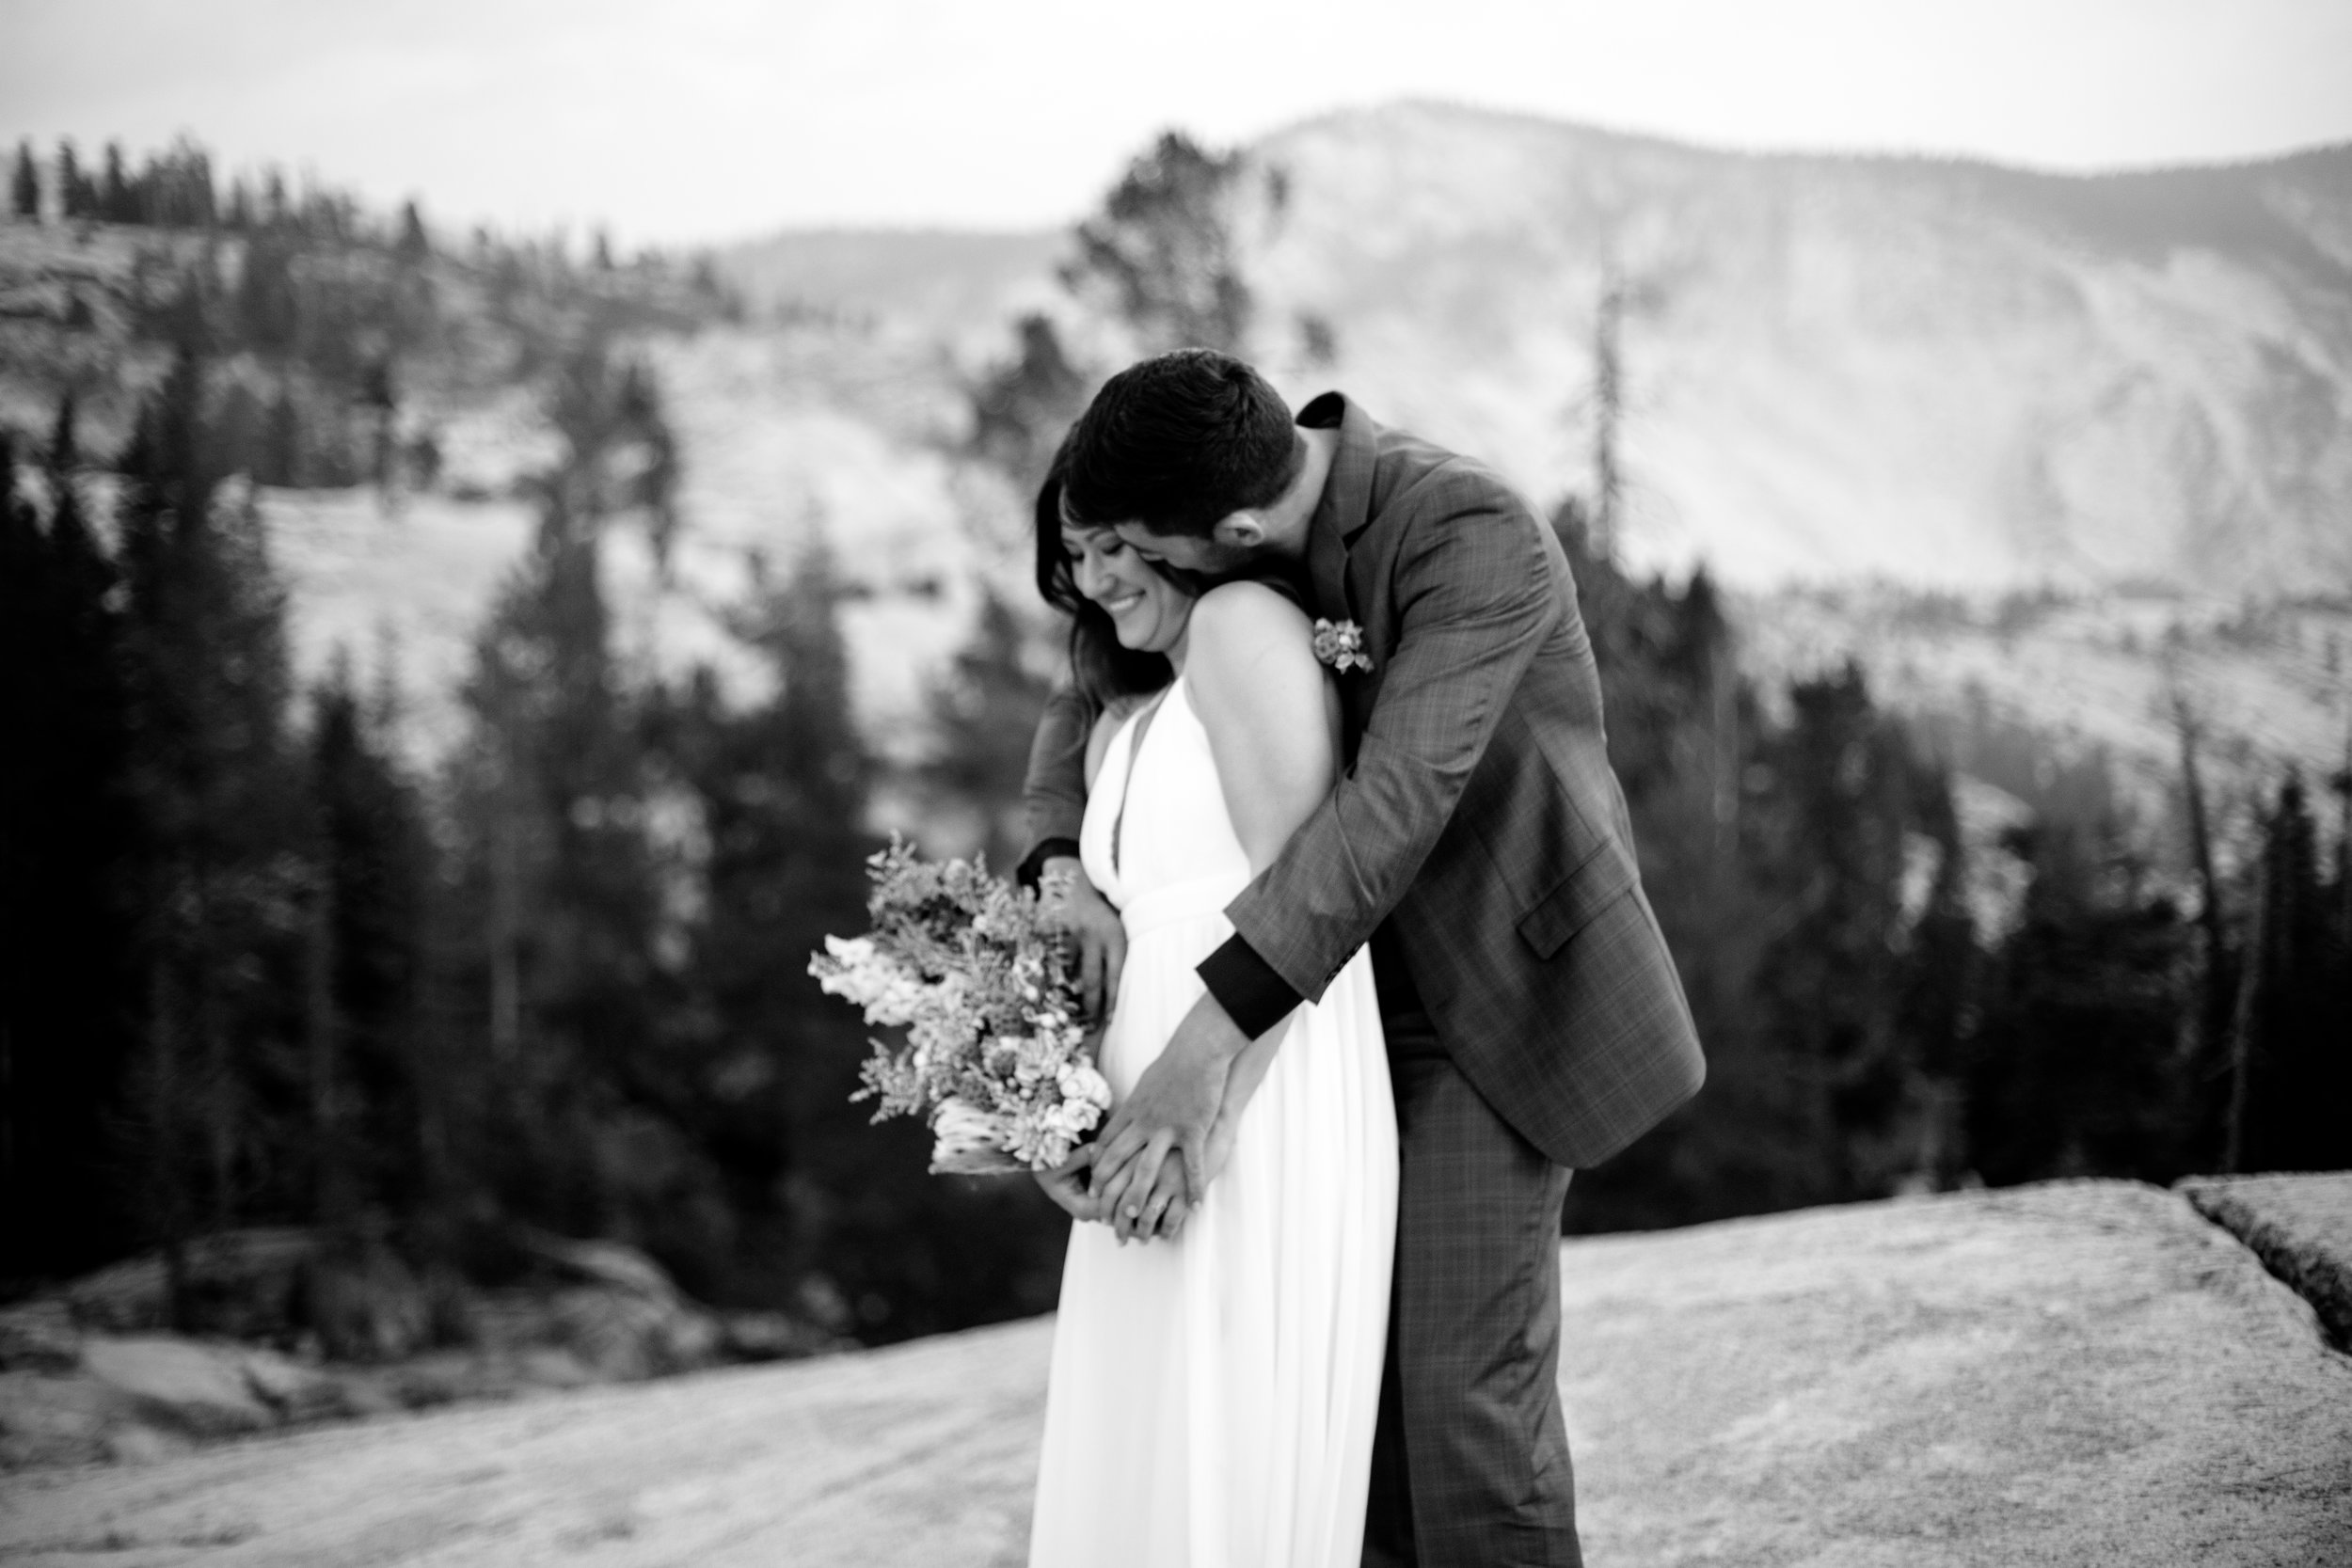 nicole-daacke-photography-yosemite-national-park-fall-elopement-adventurous-free-spirit-boho-bohemian-elopement-olmsted-point-yosemite-california-elope-adventure-elopement-photographer-65.jpg